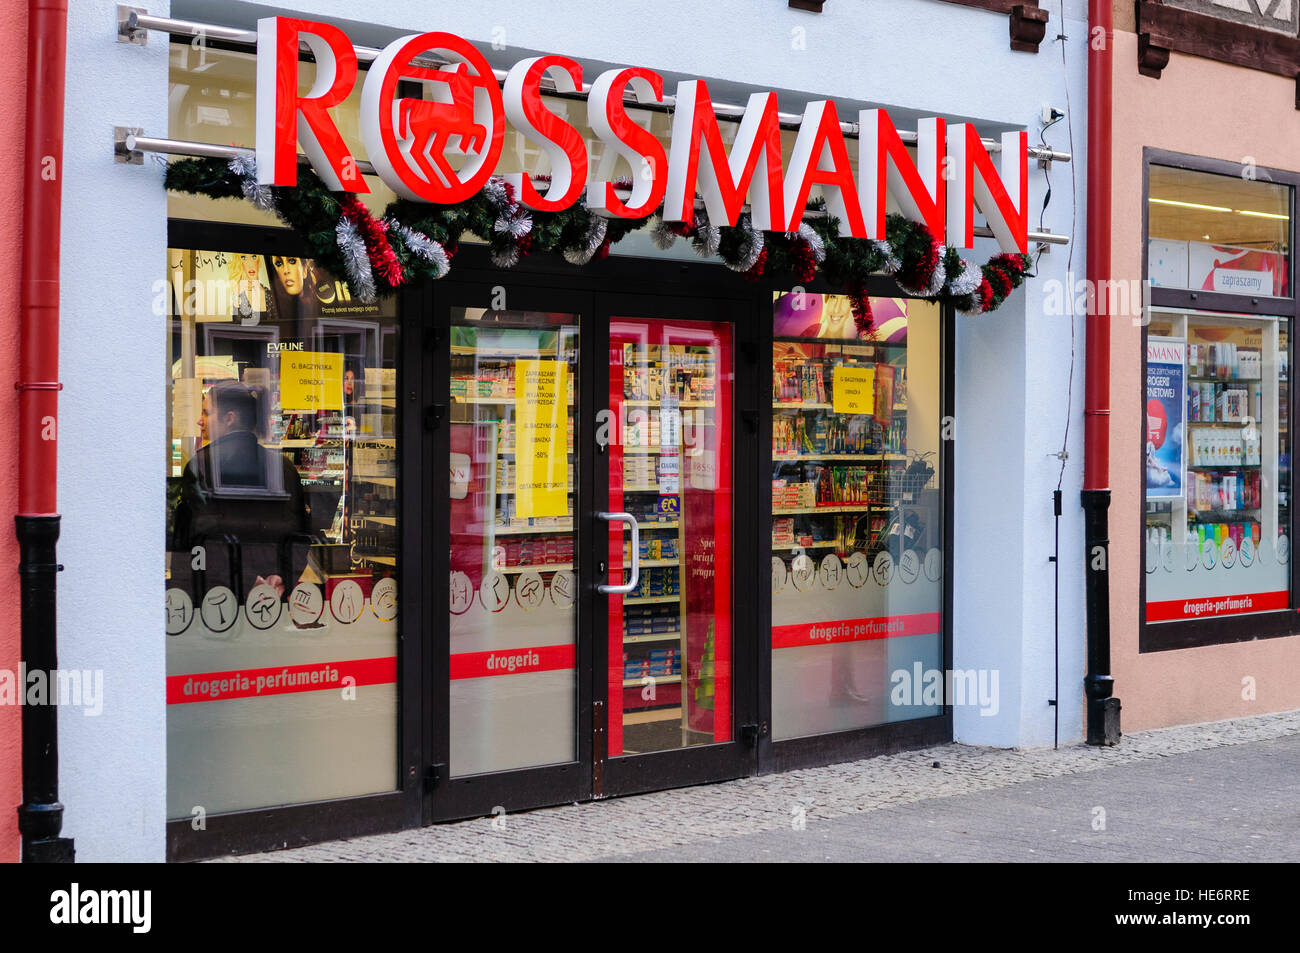 Entrance to a Rossmann store, the second largest pharmacy chain in Germany, with stores across Europe - Stock Image